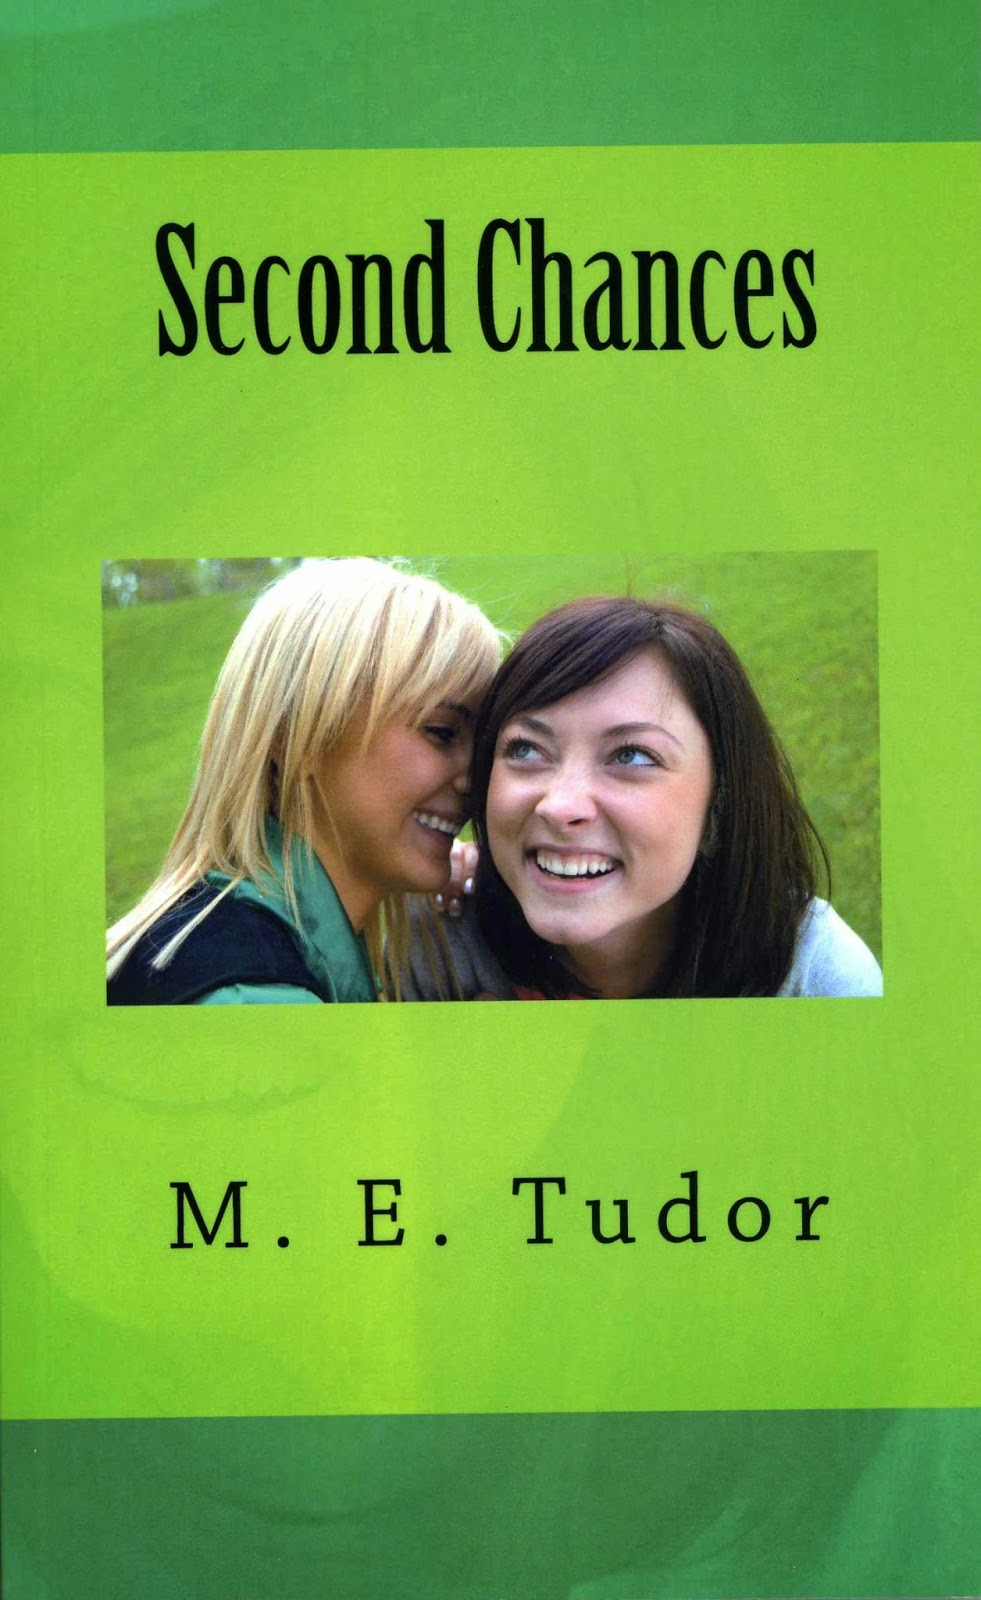 http://www.amazon.com/Second-Chances-M-E-Tudor-ebook/dp/B00KJKMUJA/ref=pd_ys_sf_s_154606011_a1_1_p?ie=UTF8&refRID=0BAJN3R3QGDZGT32BQ33